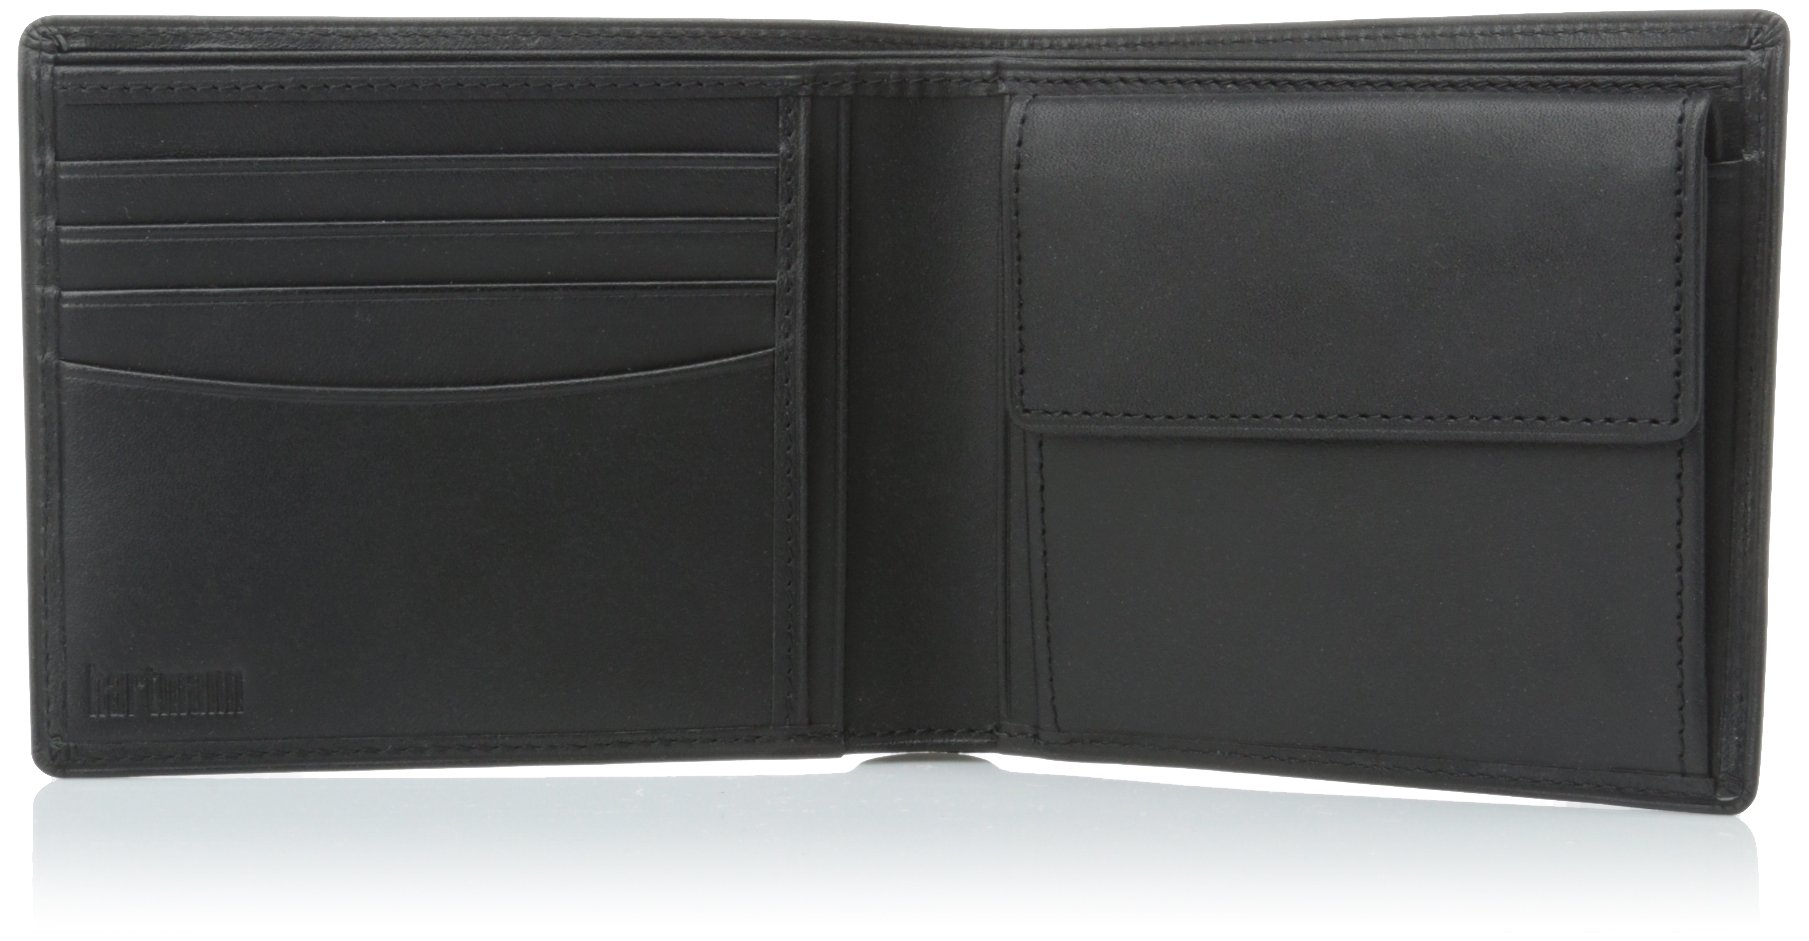 Hartmann Belting Collection Medium Wallet with Coin Pocket, Heritage Black, One Size